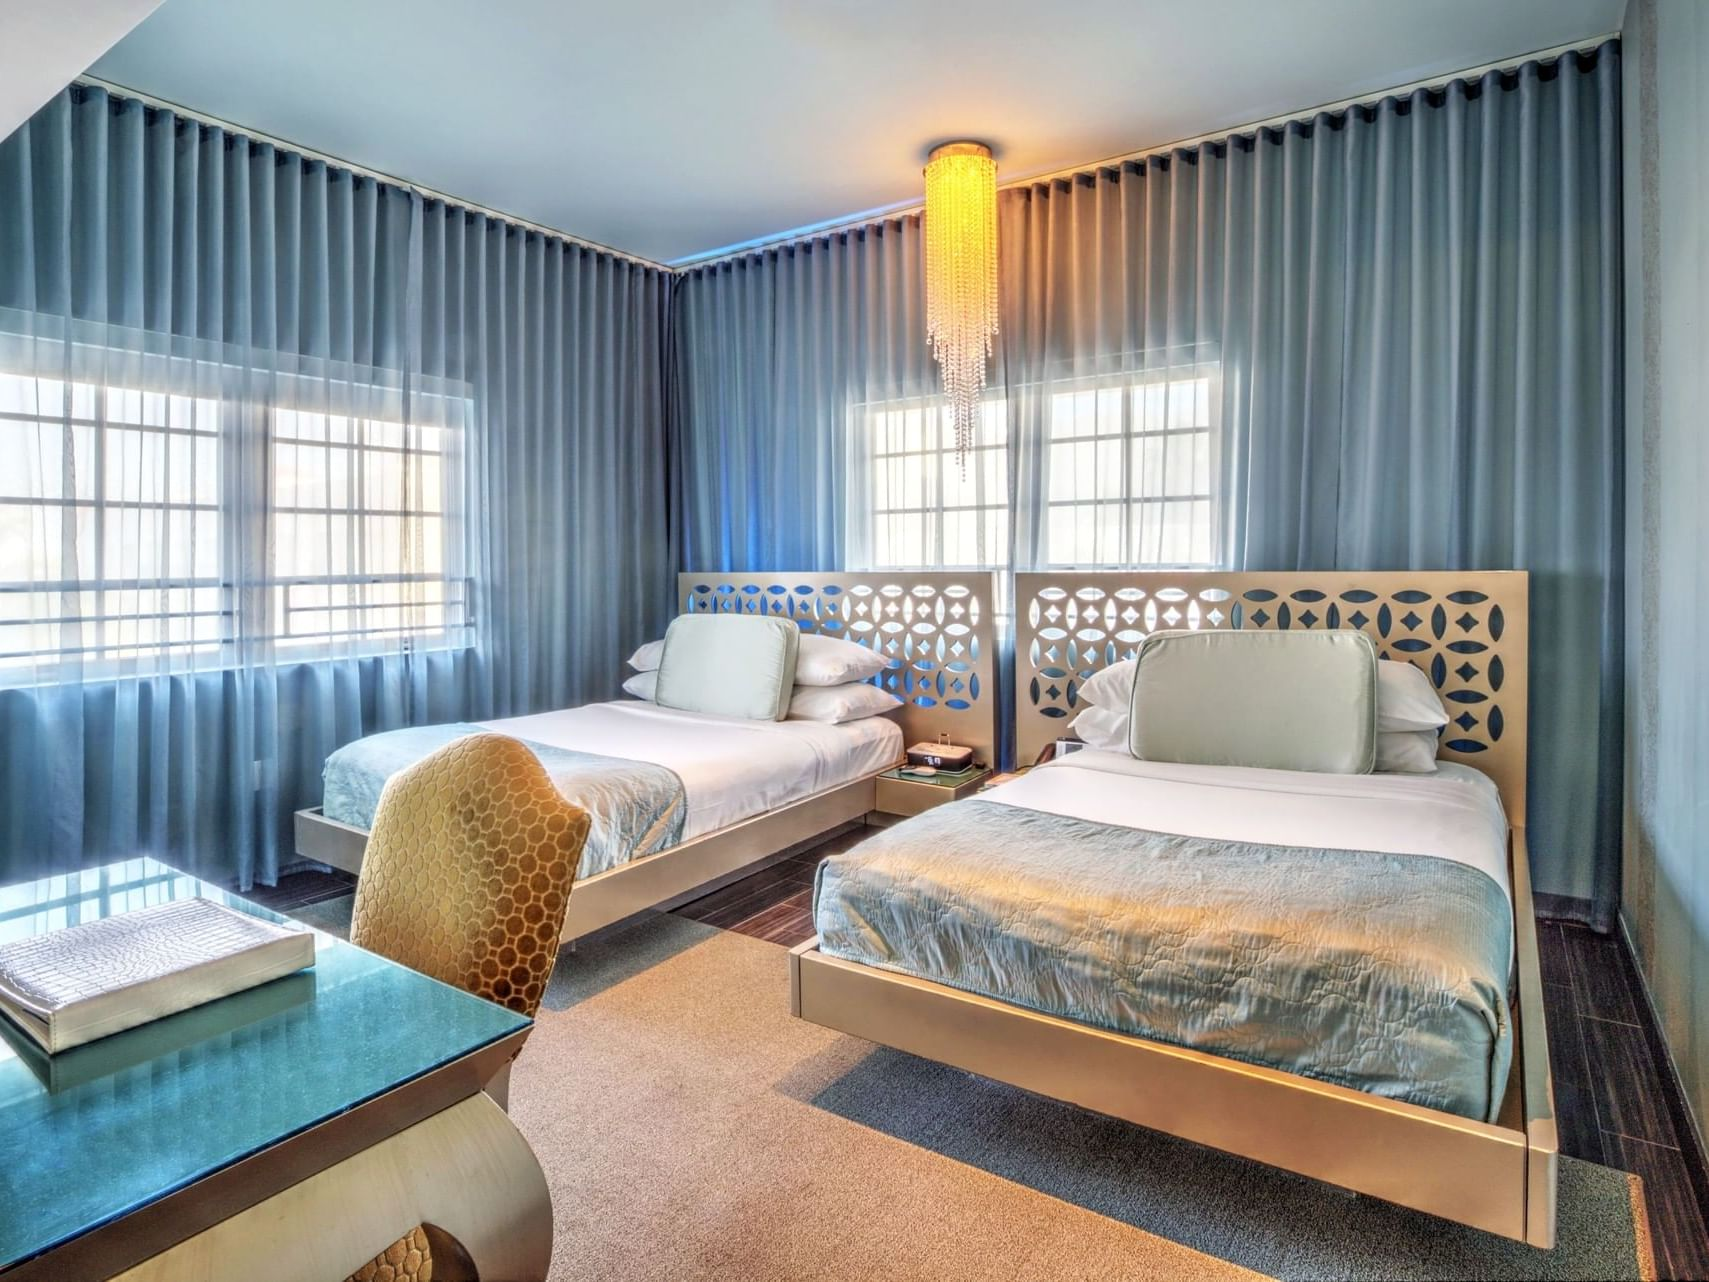 Gold Deluxe Double Double with 2 full beds at Dream South Beach